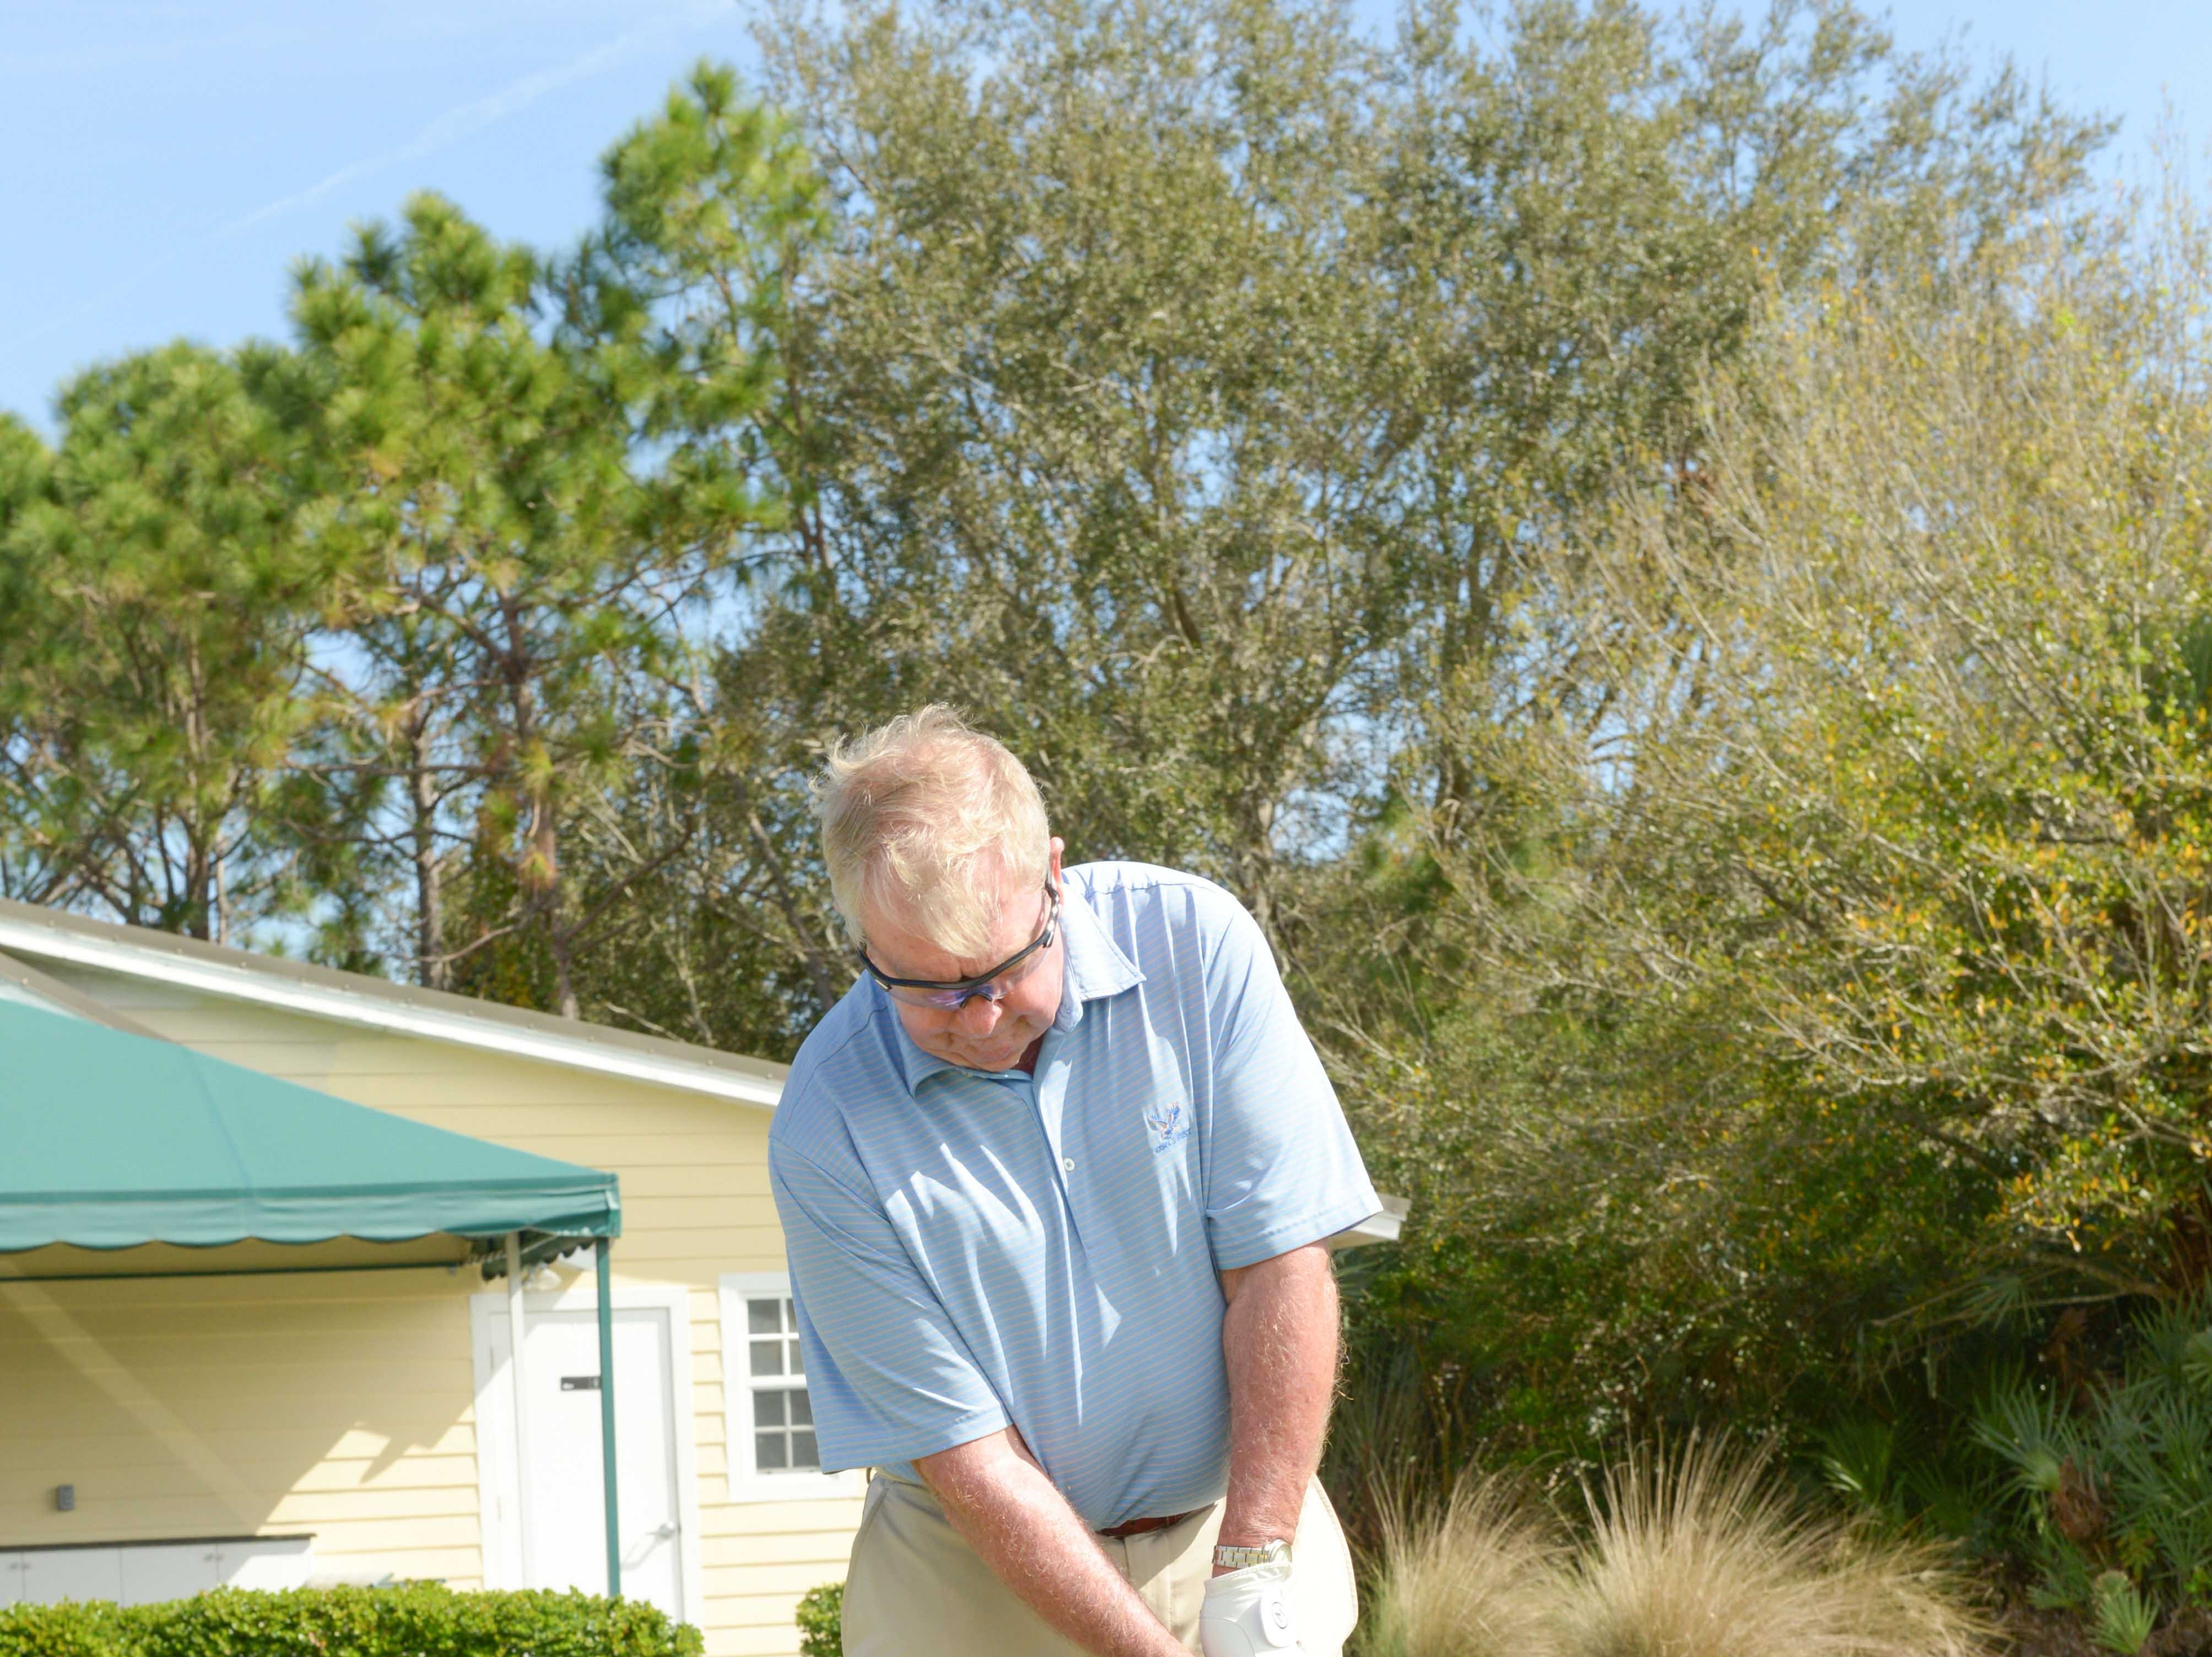 Martin Alger hits a chip shot at Hawk's Nest Golf Club for the Big Brothers Big Sisters Golf Tournament on Feb. 4.